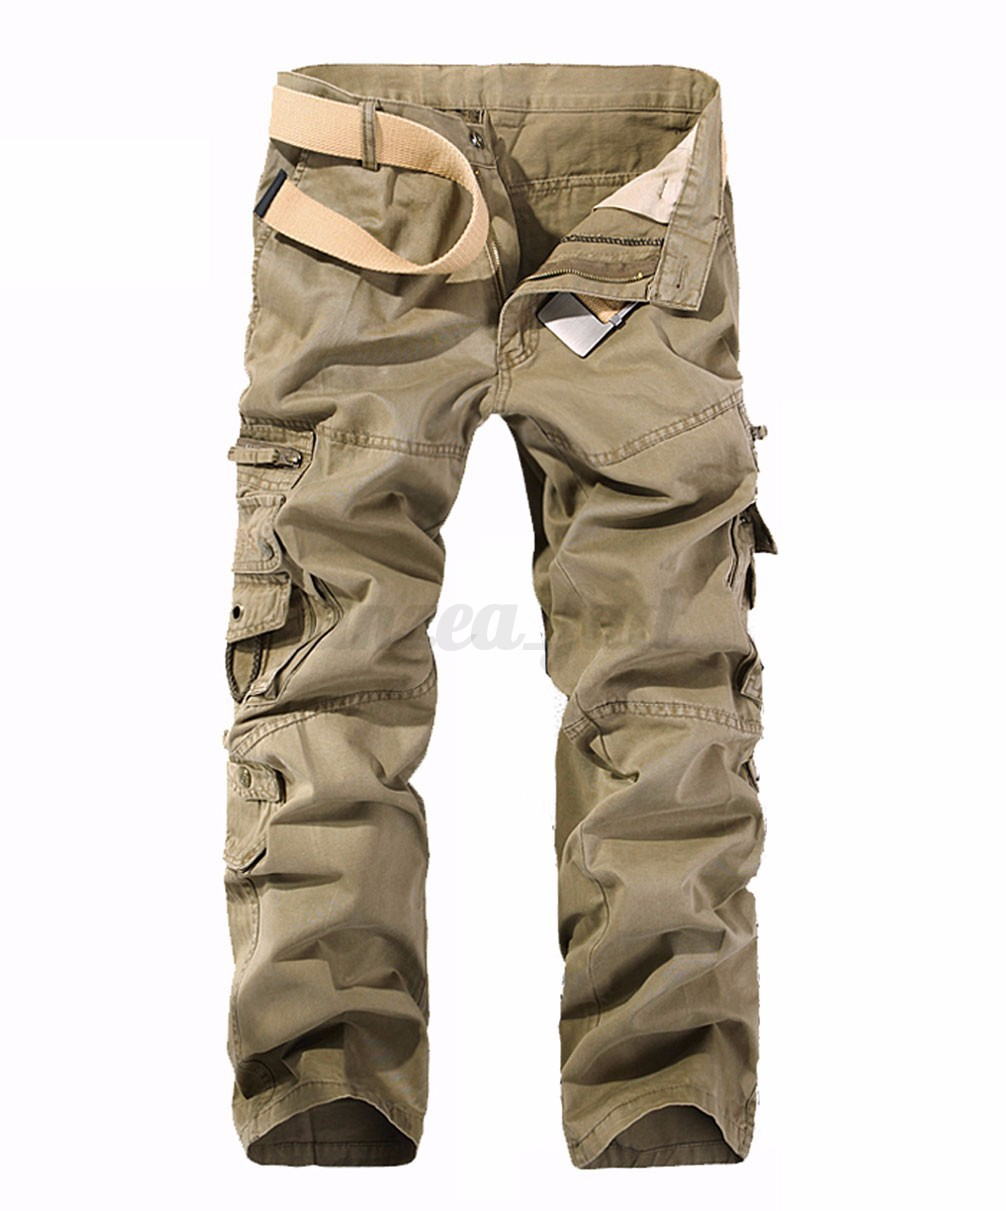 herren hose camouflage l ssig cargo pants milit r trousers casual freizeithose. Black Bedroom Furniture Sets. Home Design Ideas